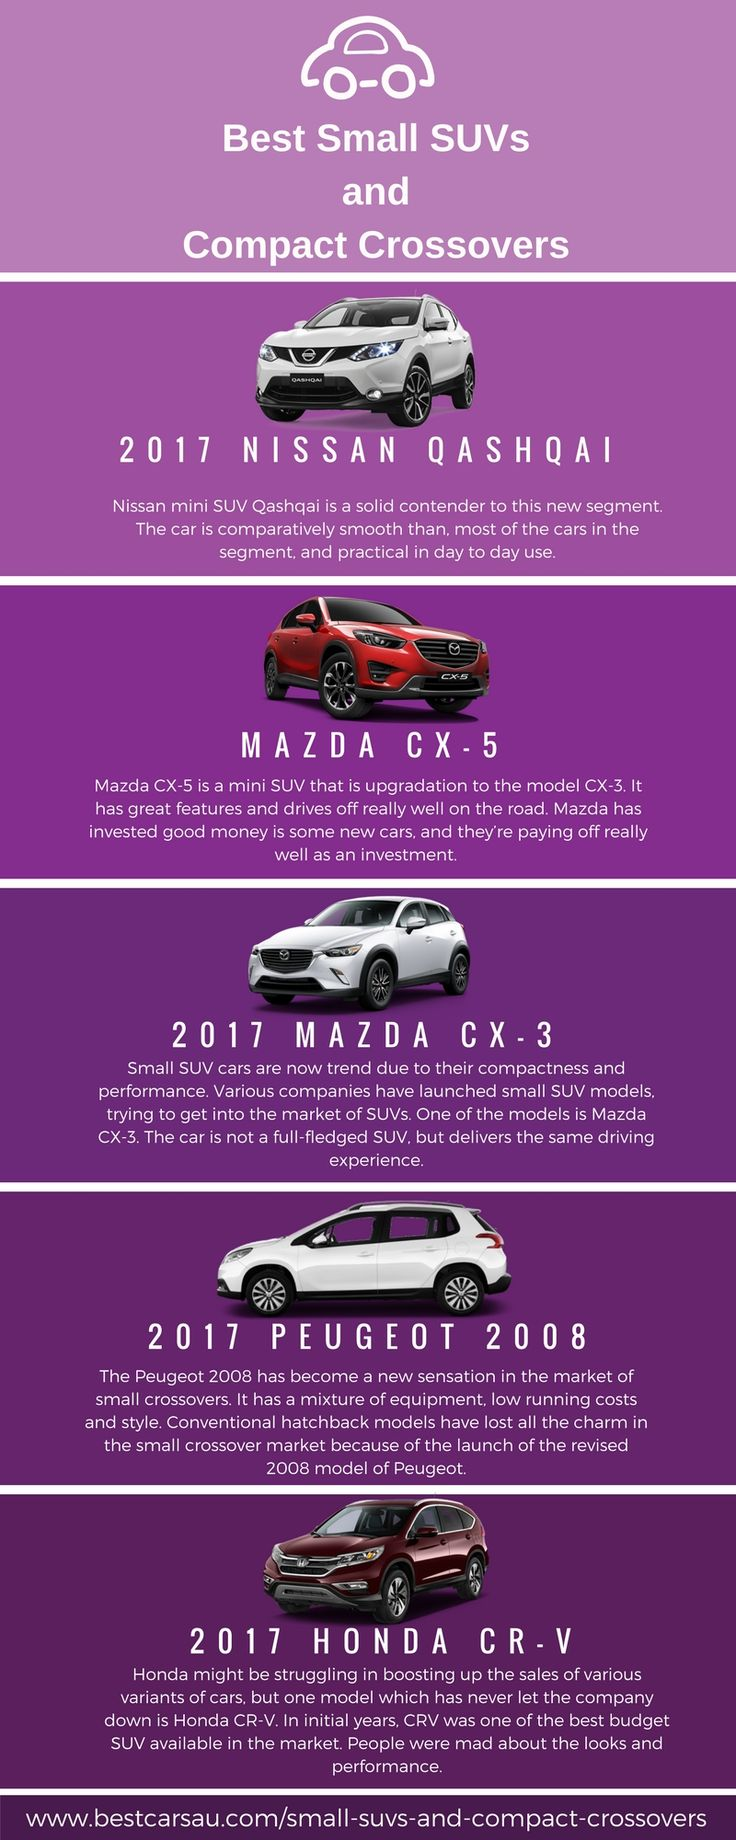 Best Small SUVs and Compact Crossovers